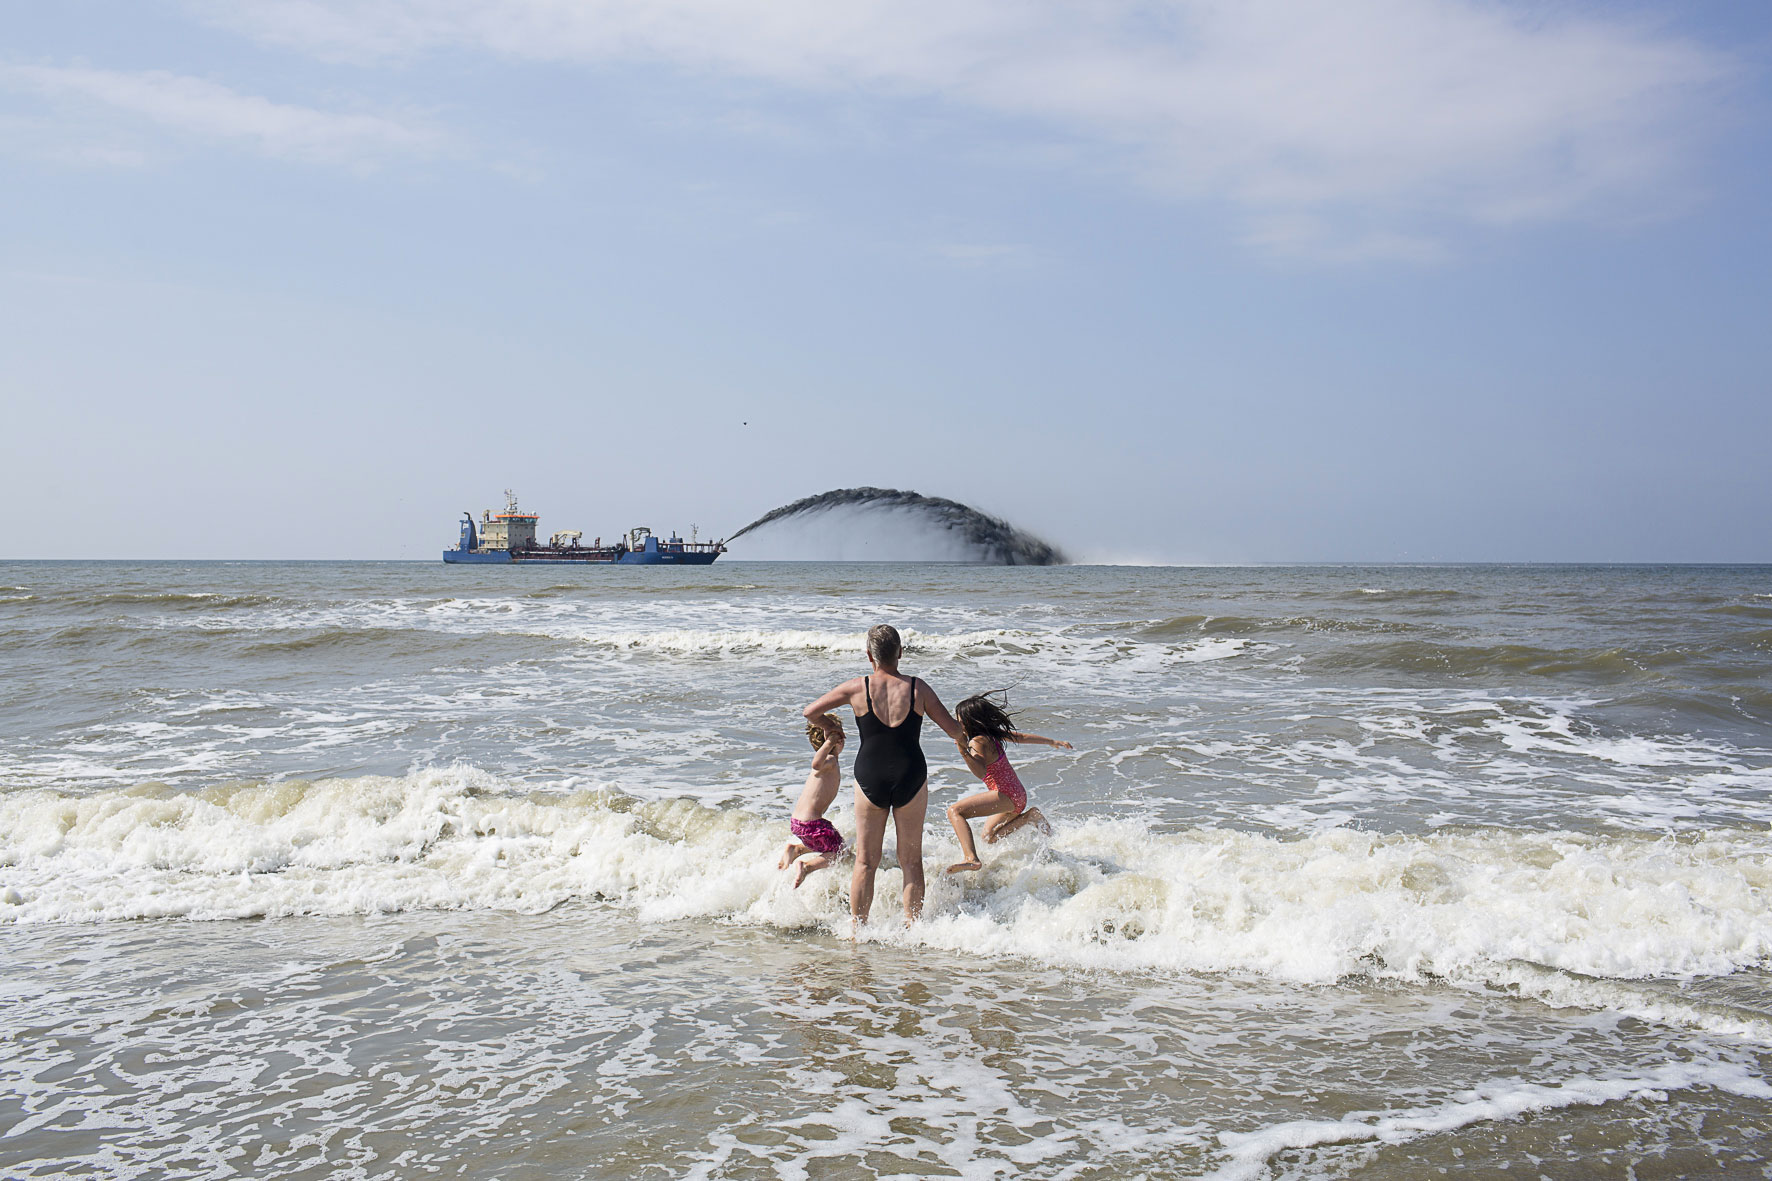 Swimming in the North Sea where at the same time new sand is being laid for protection of the Dutch coast.